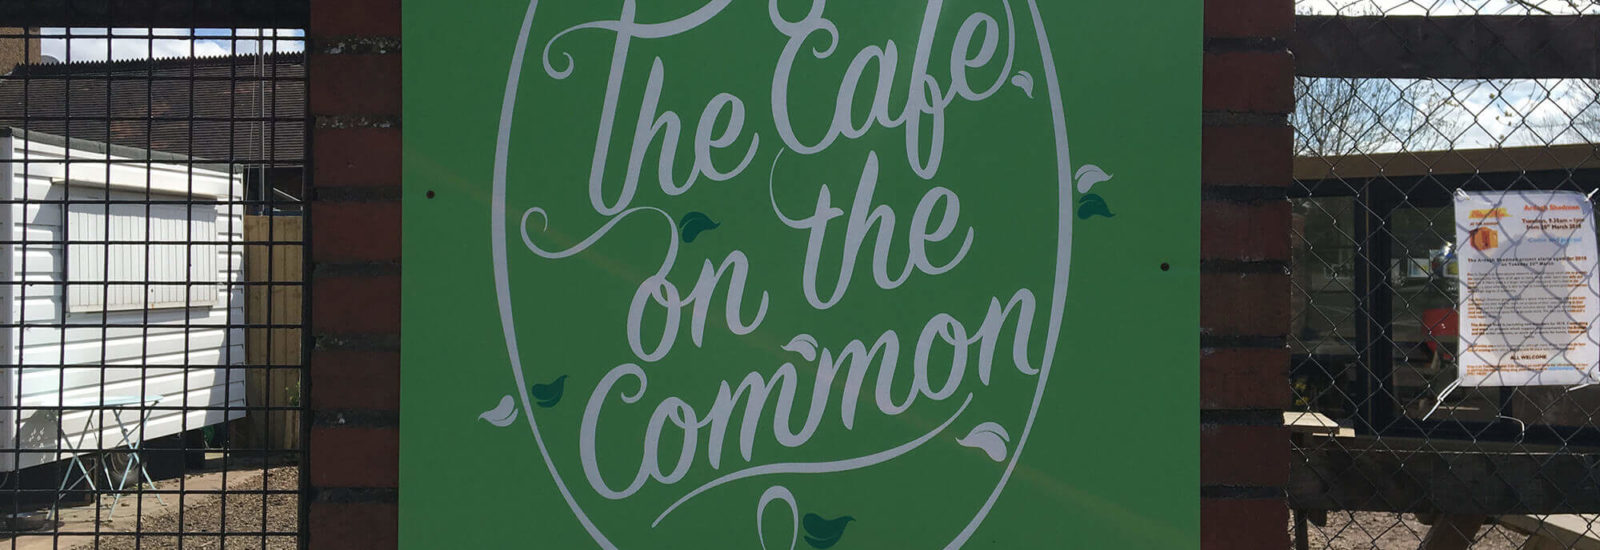 Image of Cafe on the Common